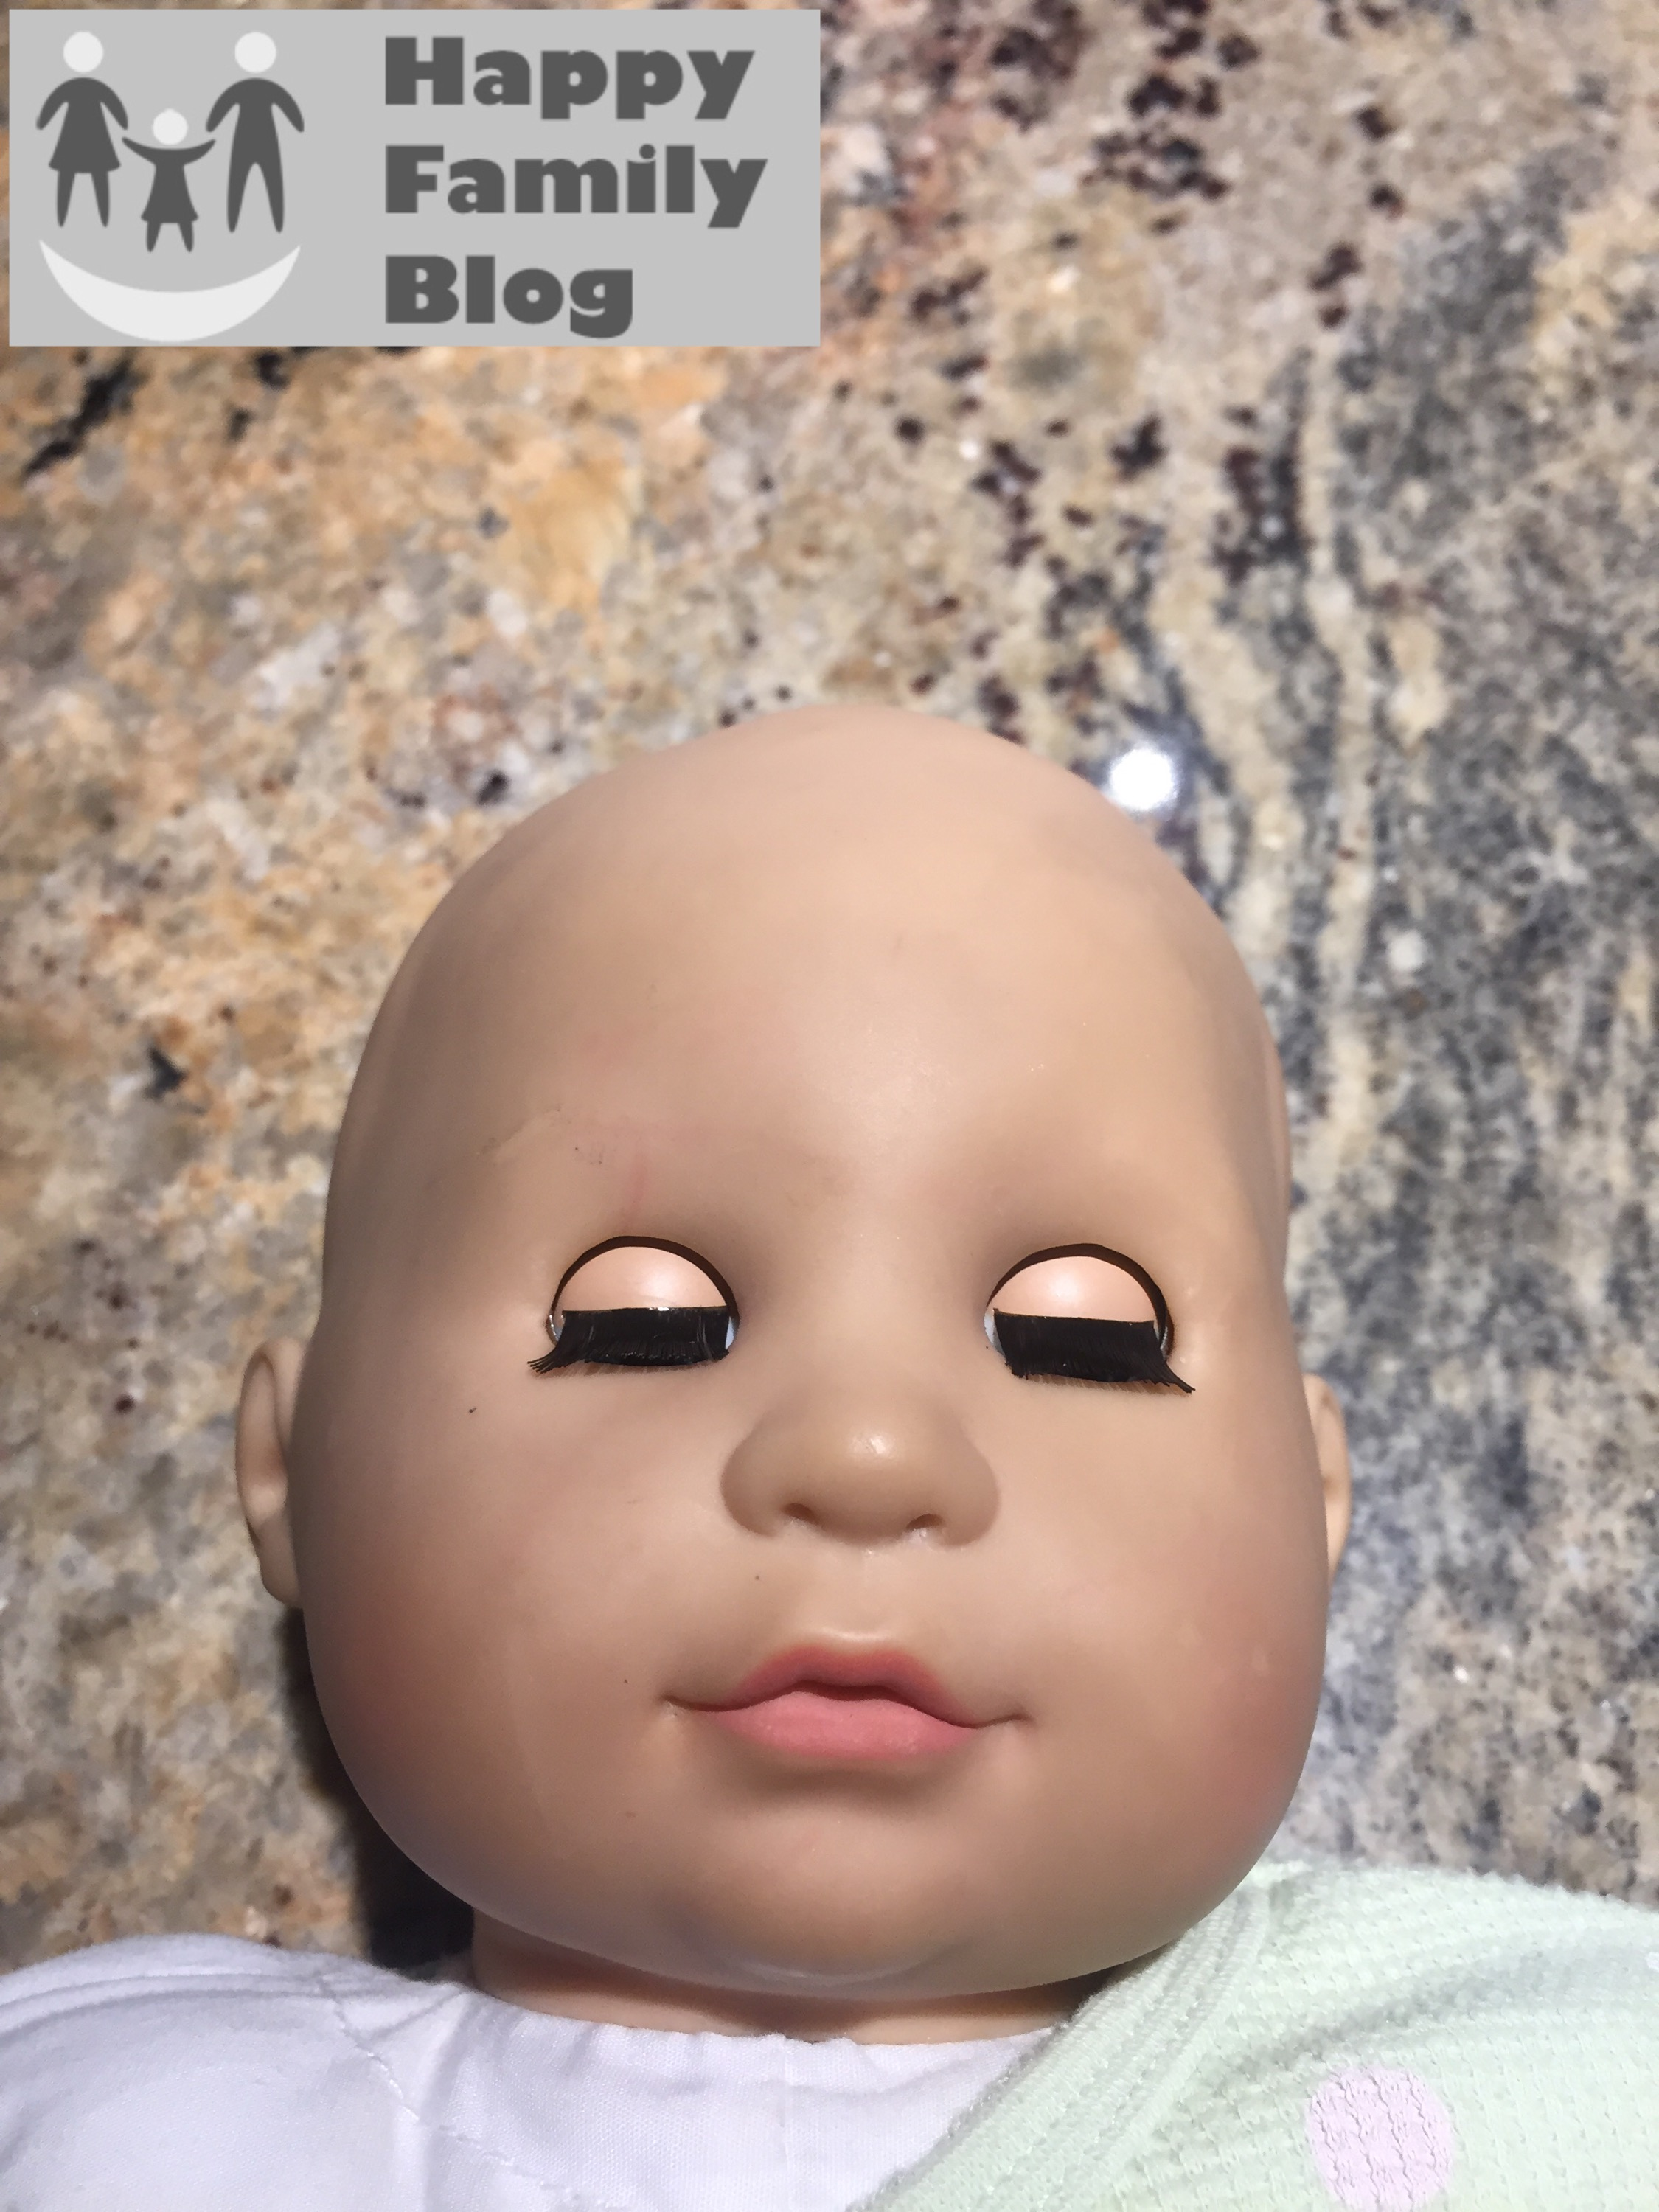 Cleaning: How to Remove Marker from a Baby Doll• Happy